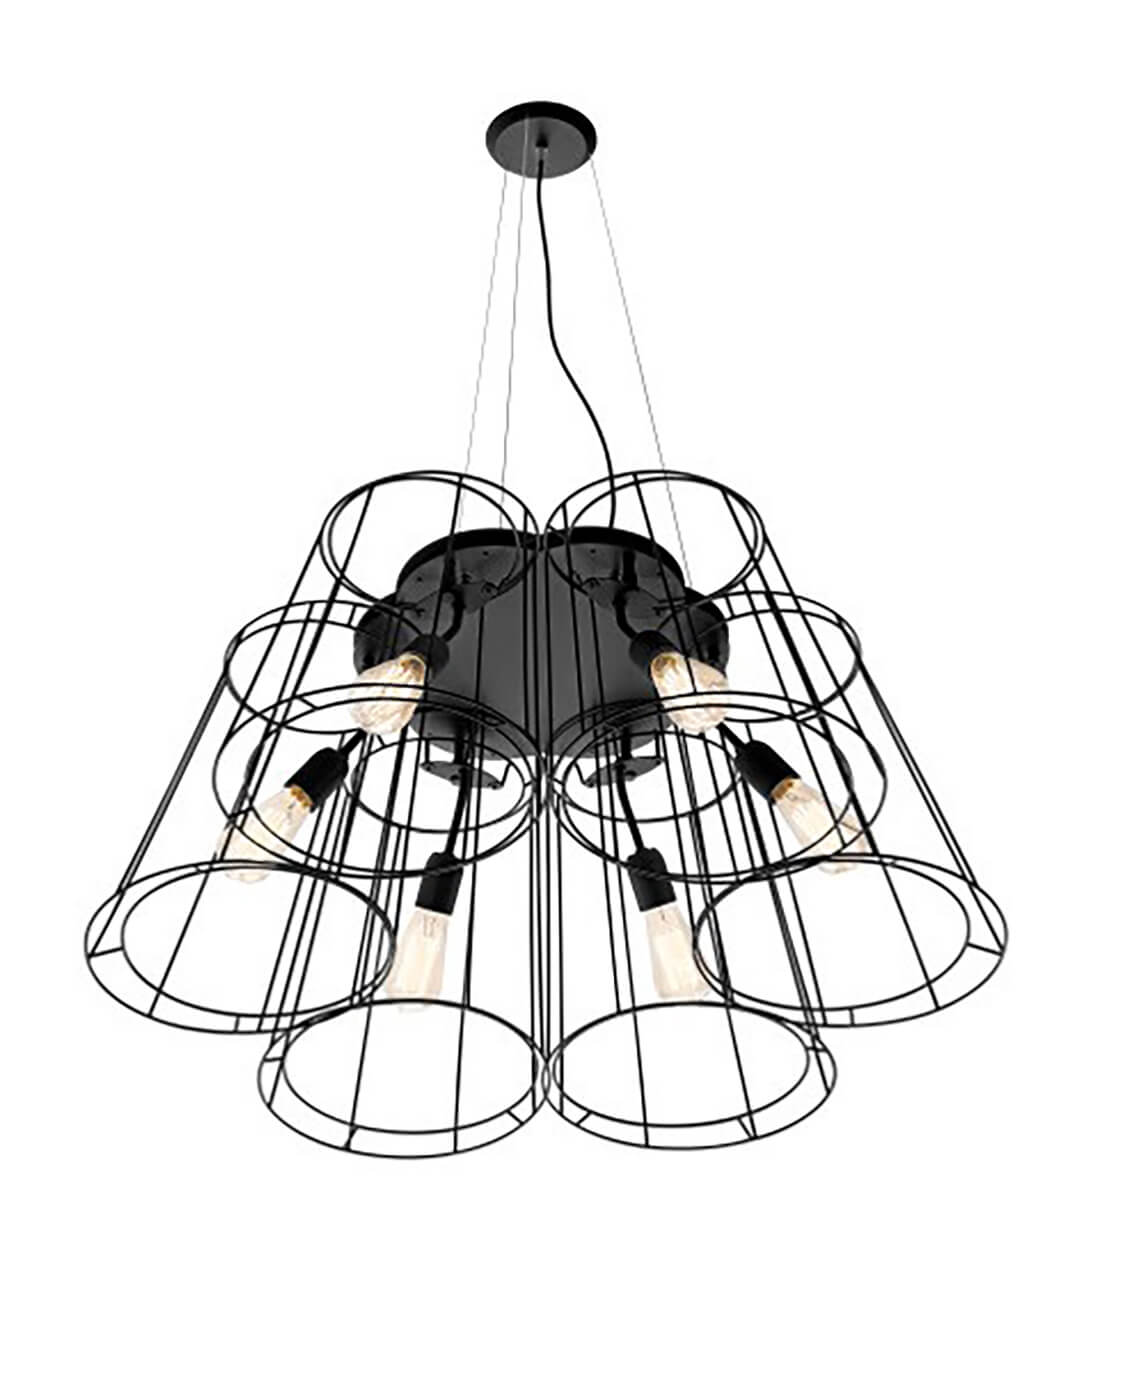 florinda desnuda suspension 6 light gallery1.jpg